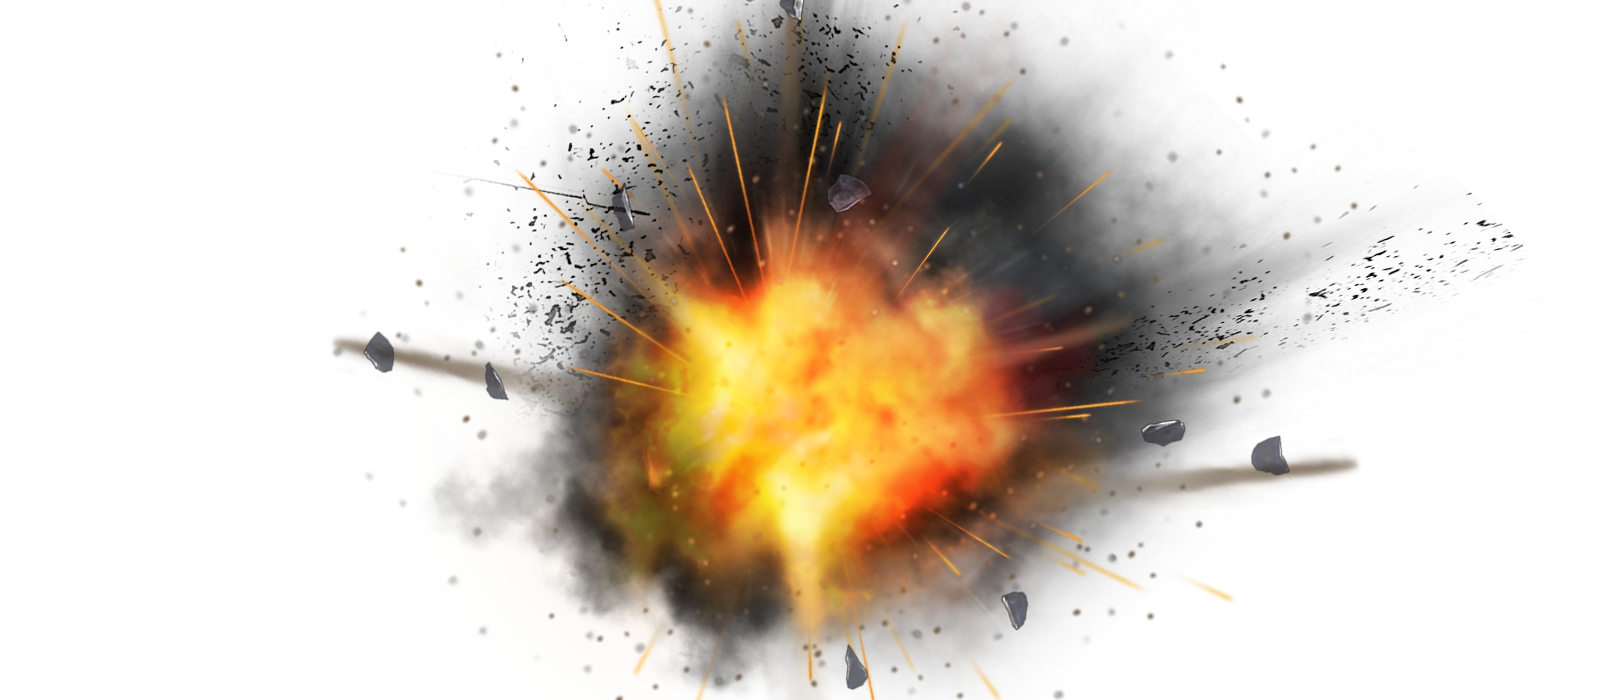 Images transparent free download. Smoke explosion png